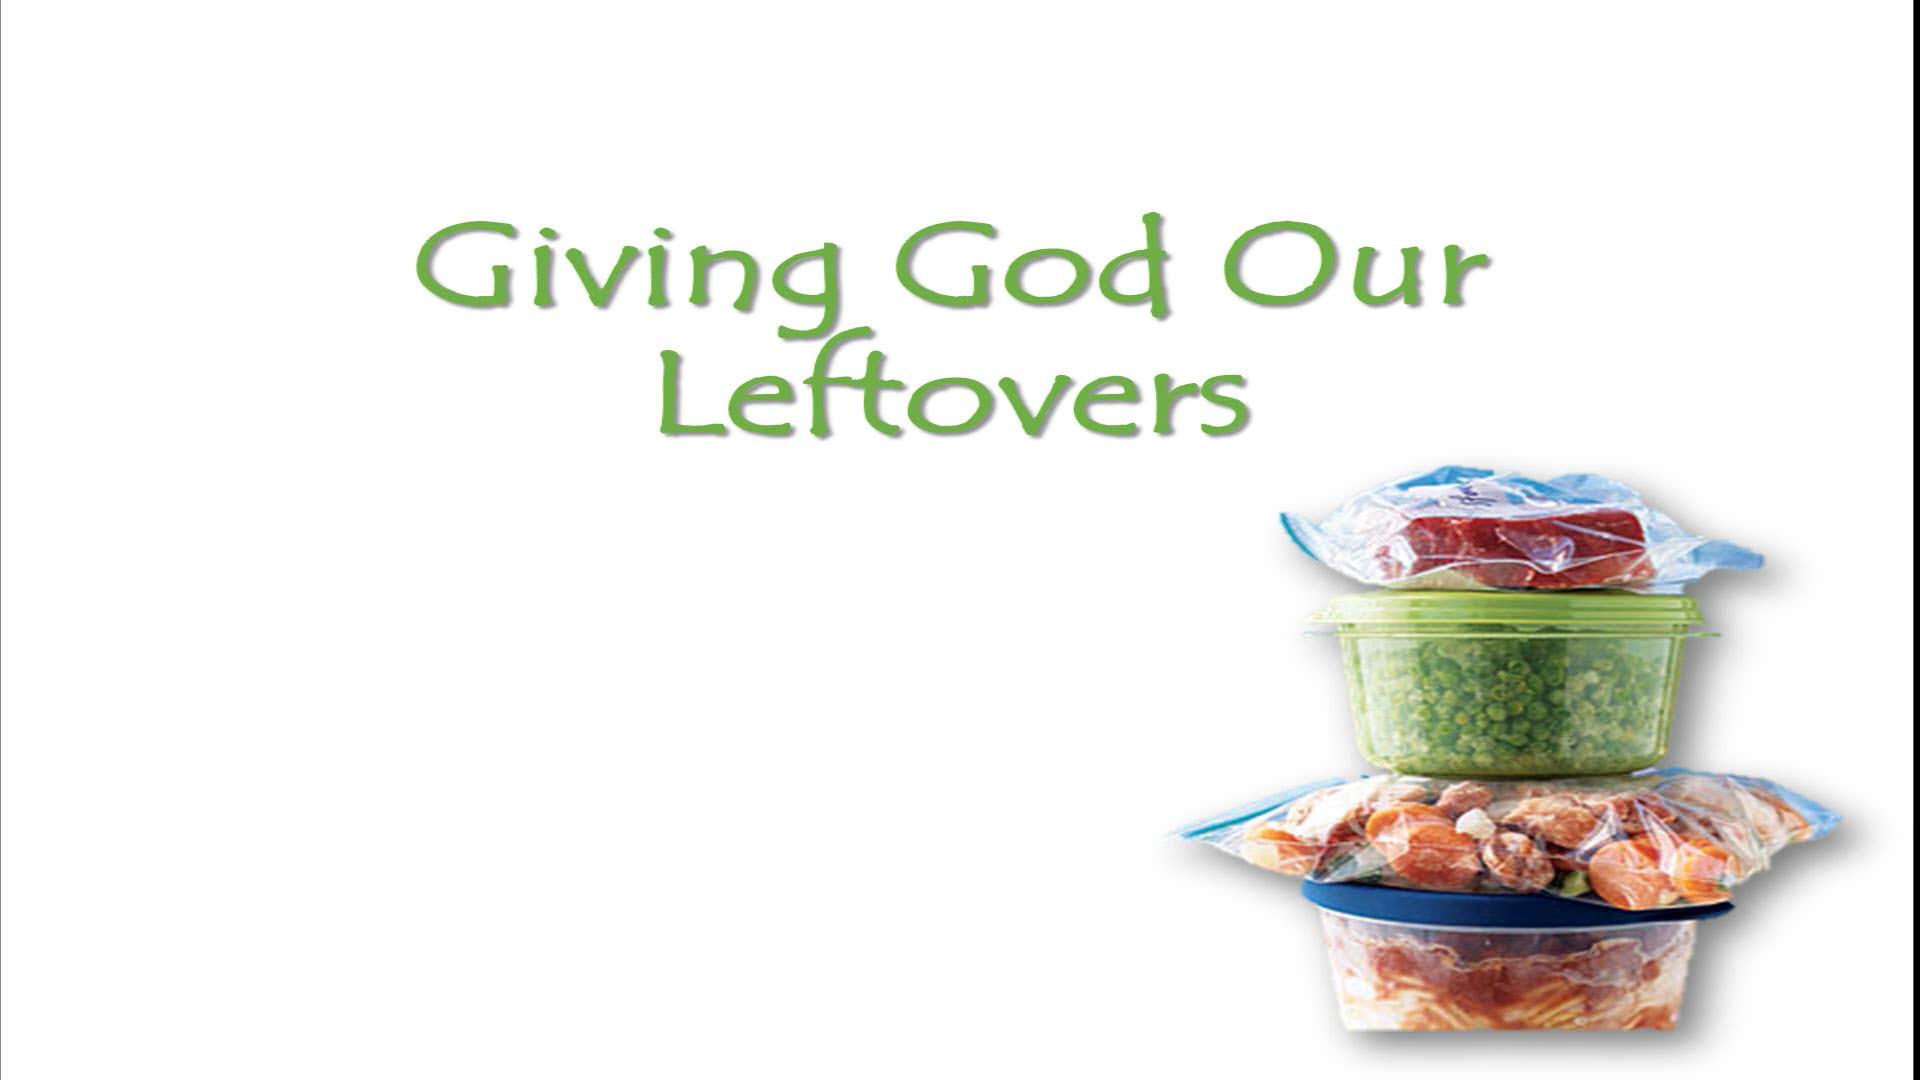 Giving God Your Leftovers